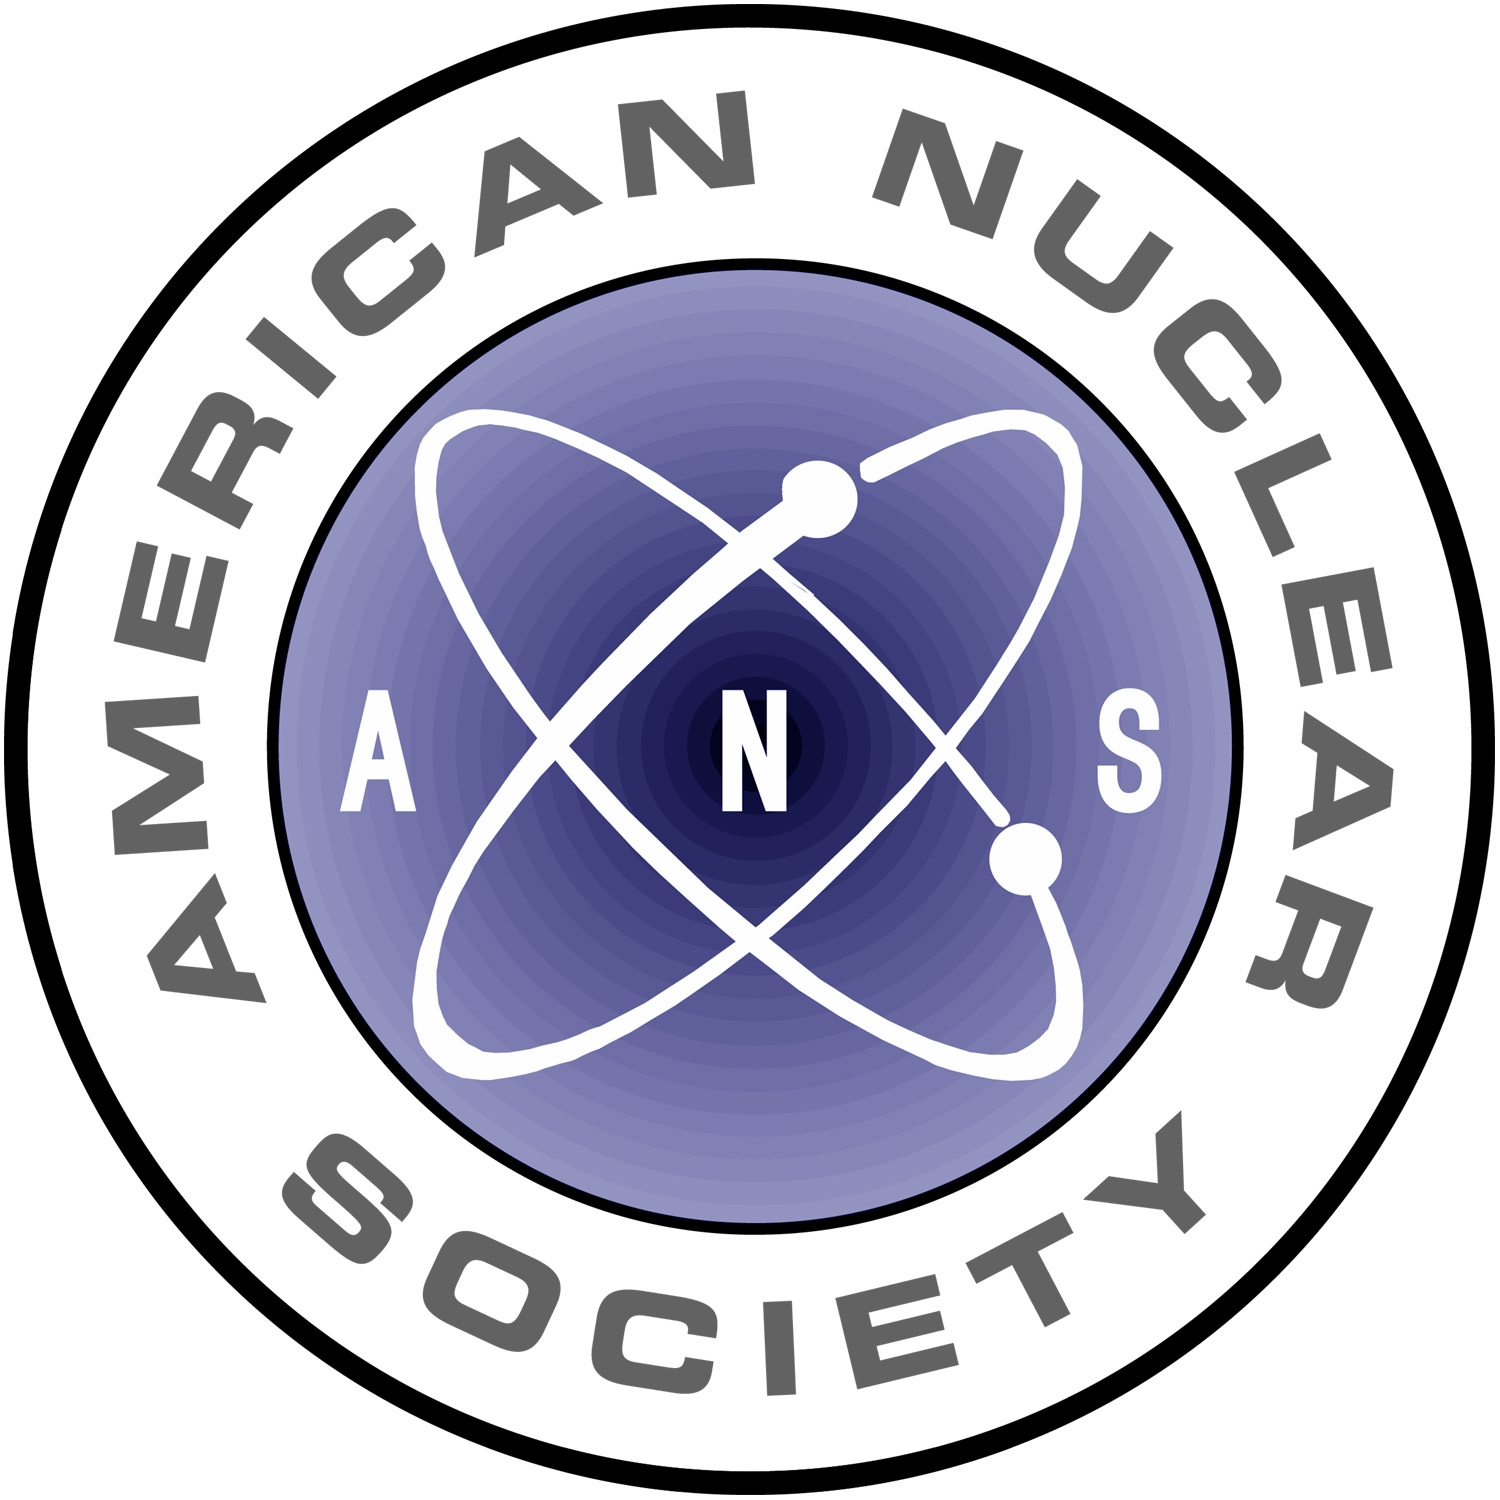 advanced-reactor-concepts-to-deliver-key-presentations-at-american-nuclear-society-annual-meeting-press-release-2010